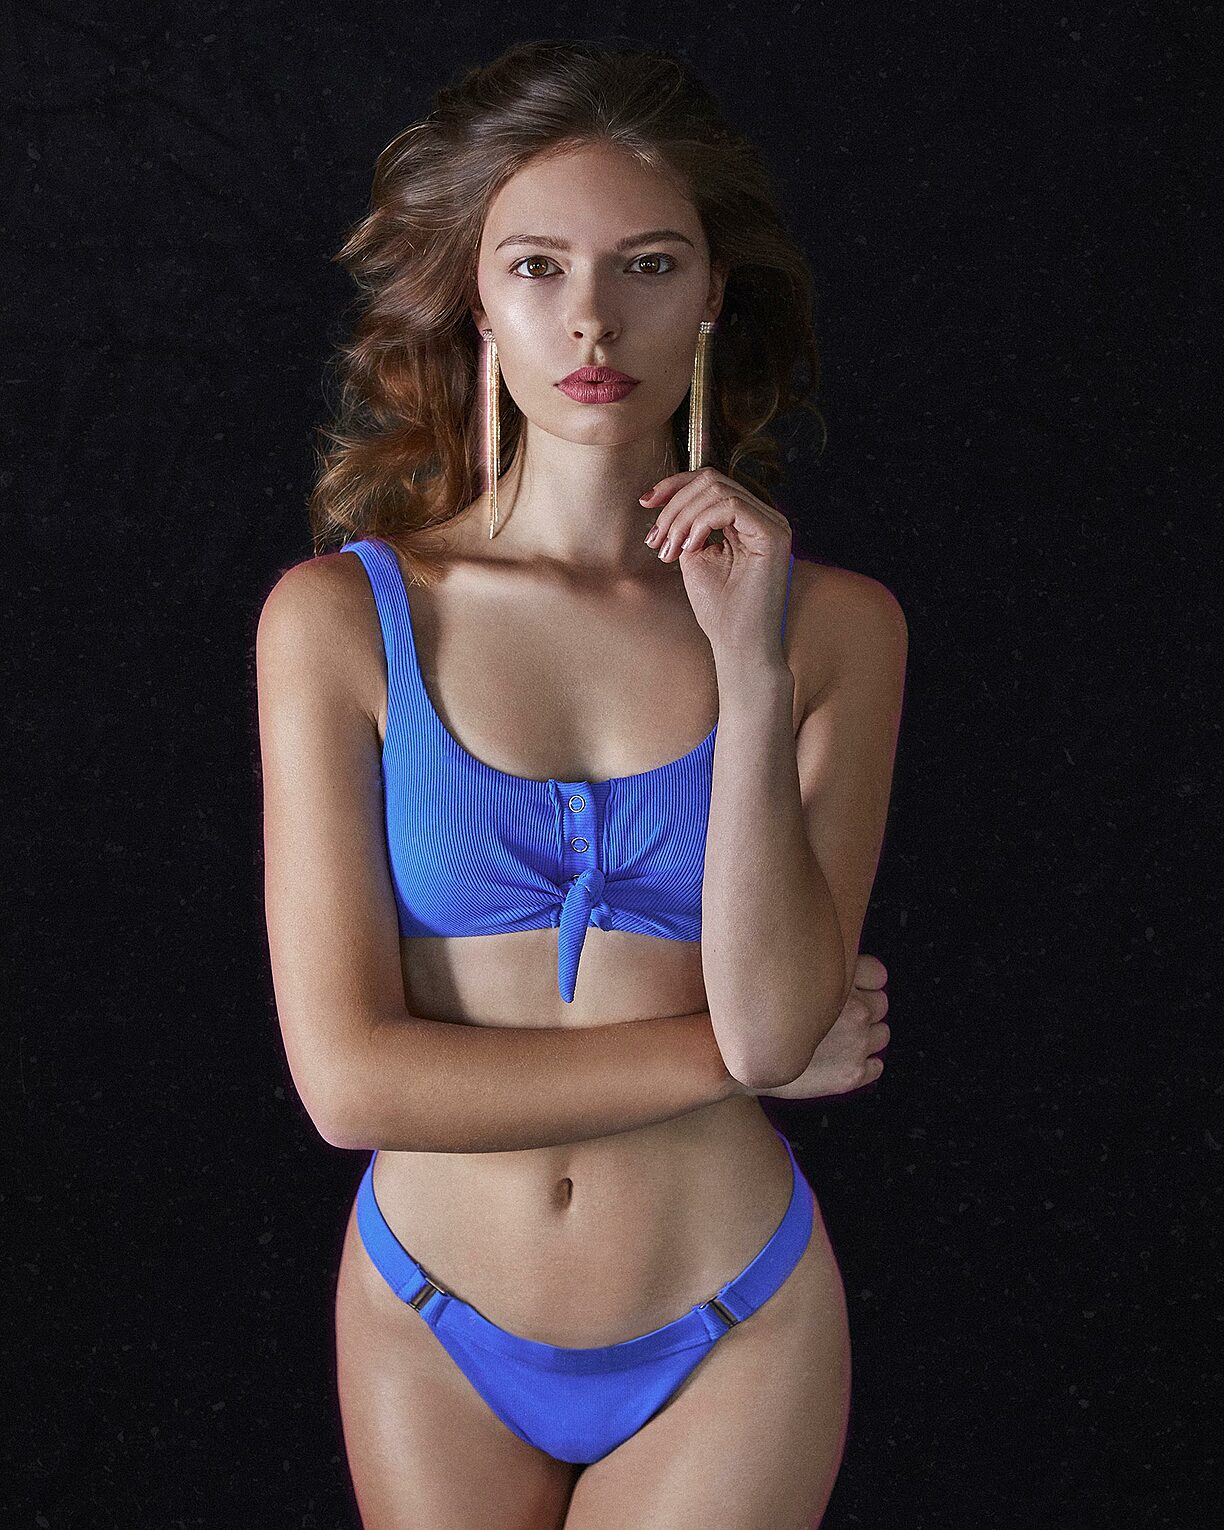 A light brown hair model with long earrings and a blue bikini